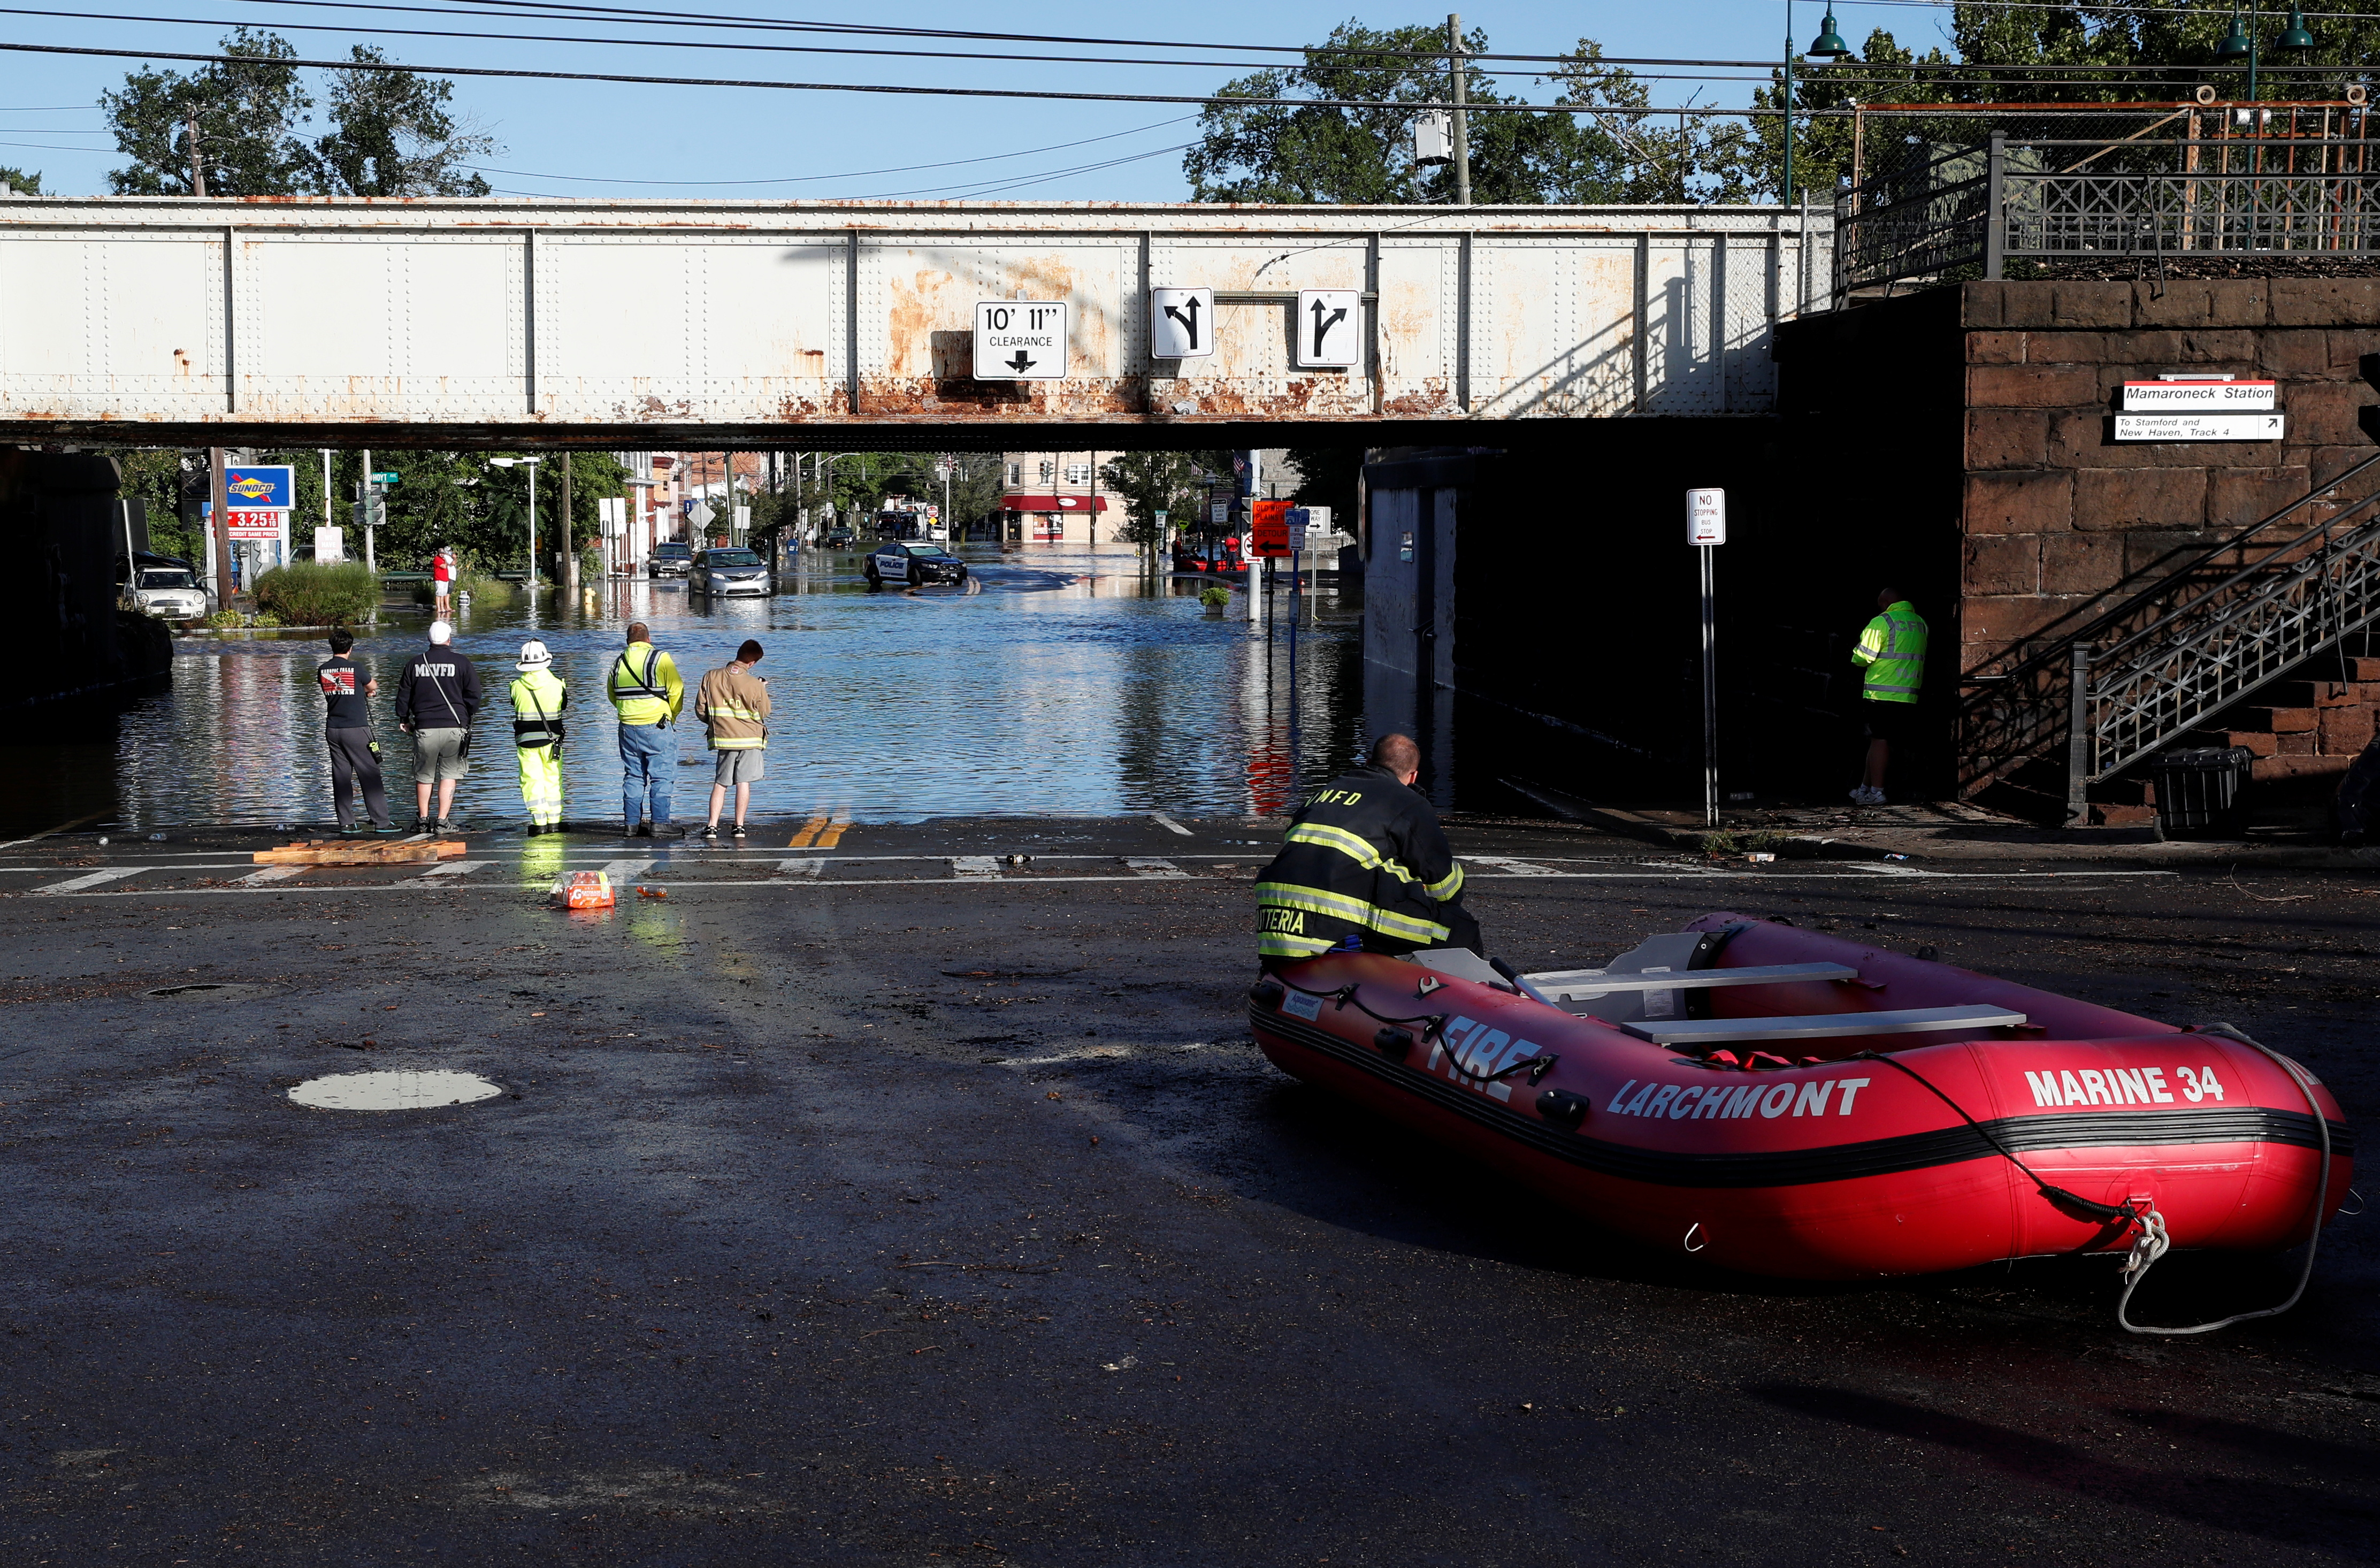 First responders stand by floodwaters to perform rescues of trapped local residents after the remnants of Tropical Storm Ida brought drenching rain, flash floods and tornadoes to parts of the northeast in Mamaroneck, New York, U.S., September 2, 2021. REUTERS/Mike Segar